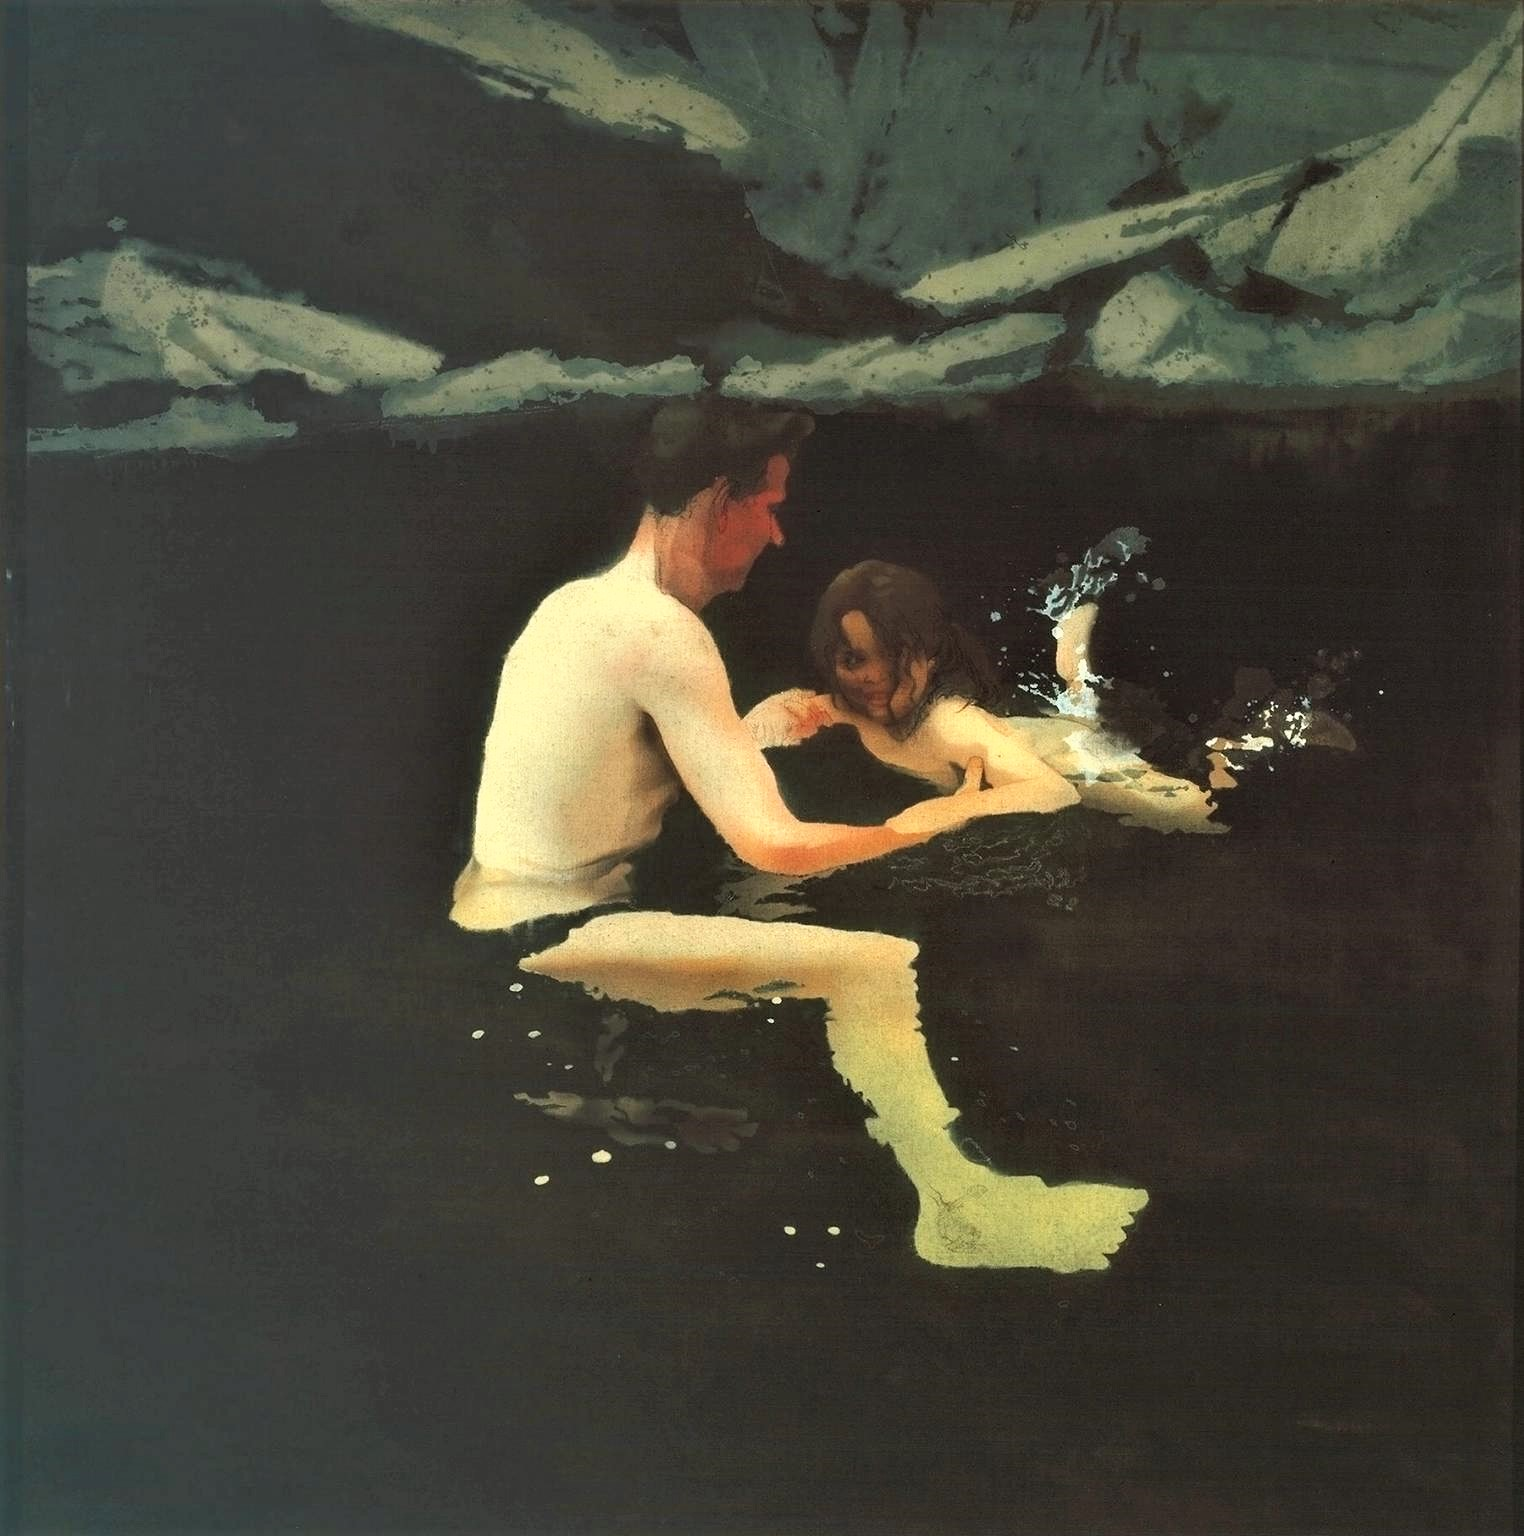 Melanie and Me Swimming 1978-9 Michael Andrews 1928-1995 Purchased 1979 http://www.tate.org.uk/art/work/T02334